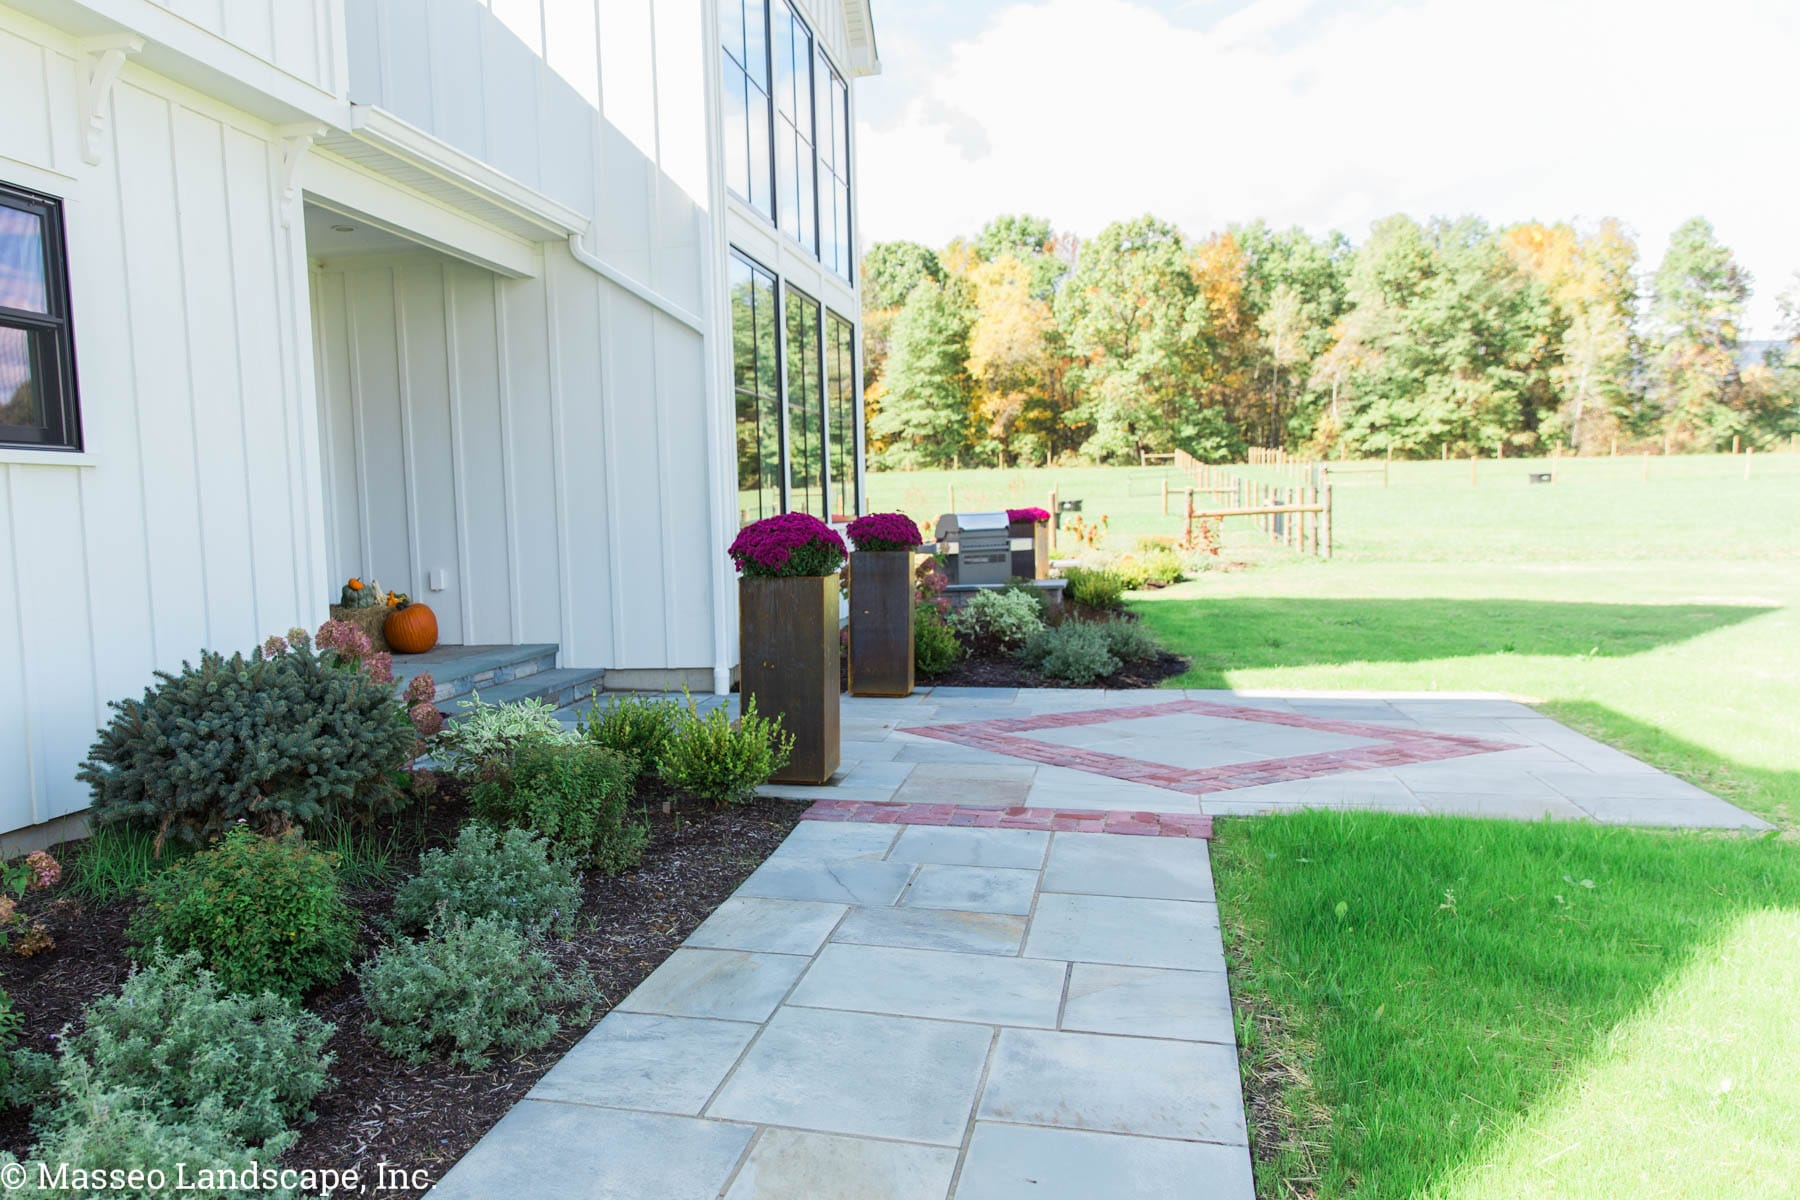 A bluestone walkway and landing with brick inset designs installed by Masseo Landscape, Inc., Gardiner Landscapers